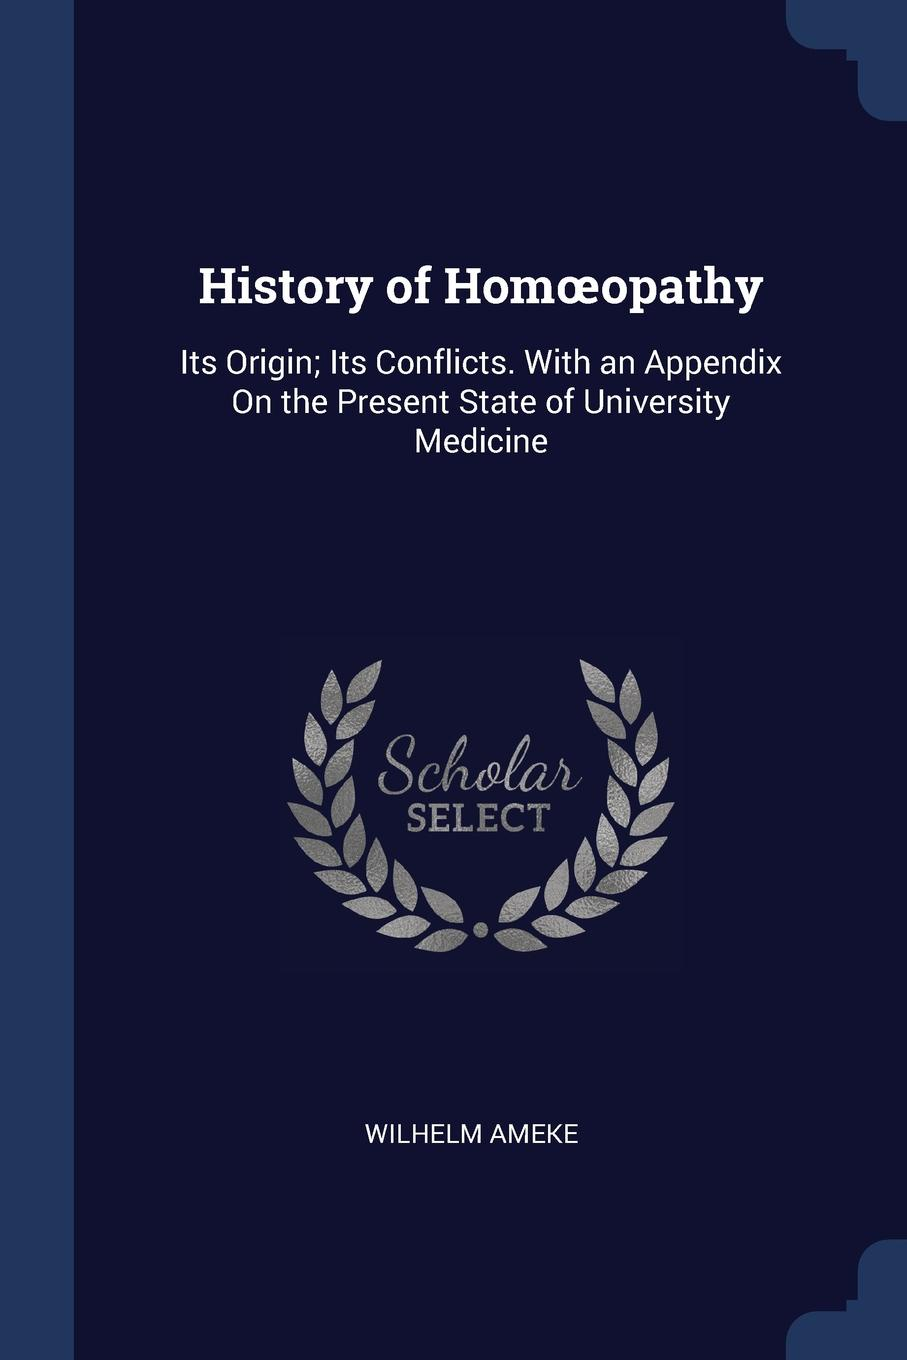 Wilhelm Ameke History of Homoeopathy. Its Origin; Its Conflicts. With an Appendix On the Present State of University Medicine charles richard tuttle the centennial northwest an illustrated history of the northwest being a full and complete civil political and military history of this great section of the united states from its earliest settlement to the present time